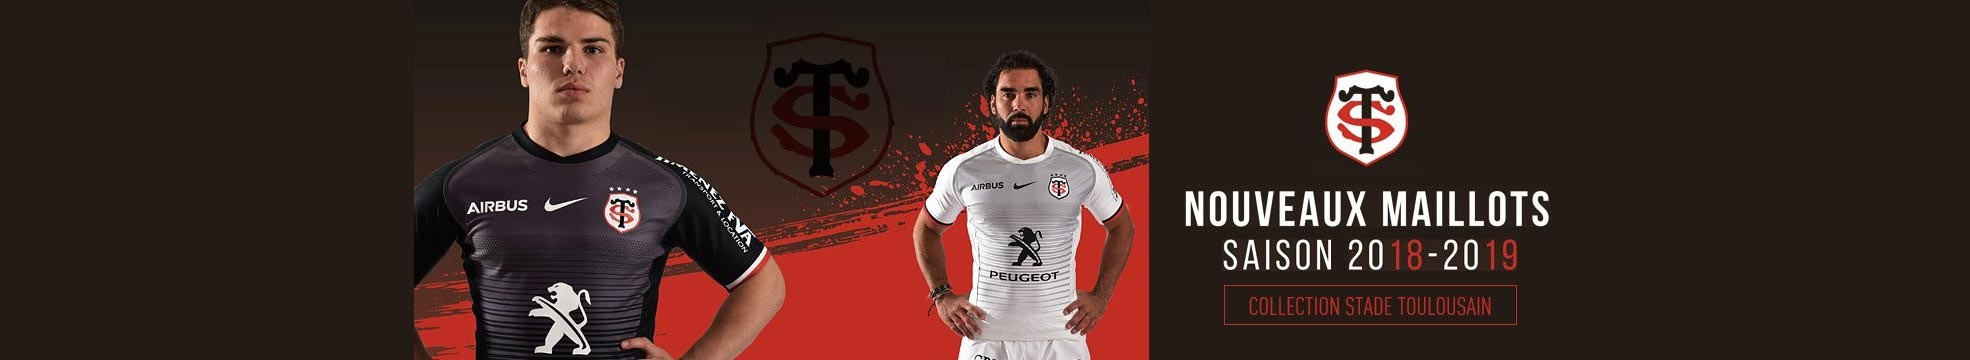 maillots stade toulousain collection 2018-2019